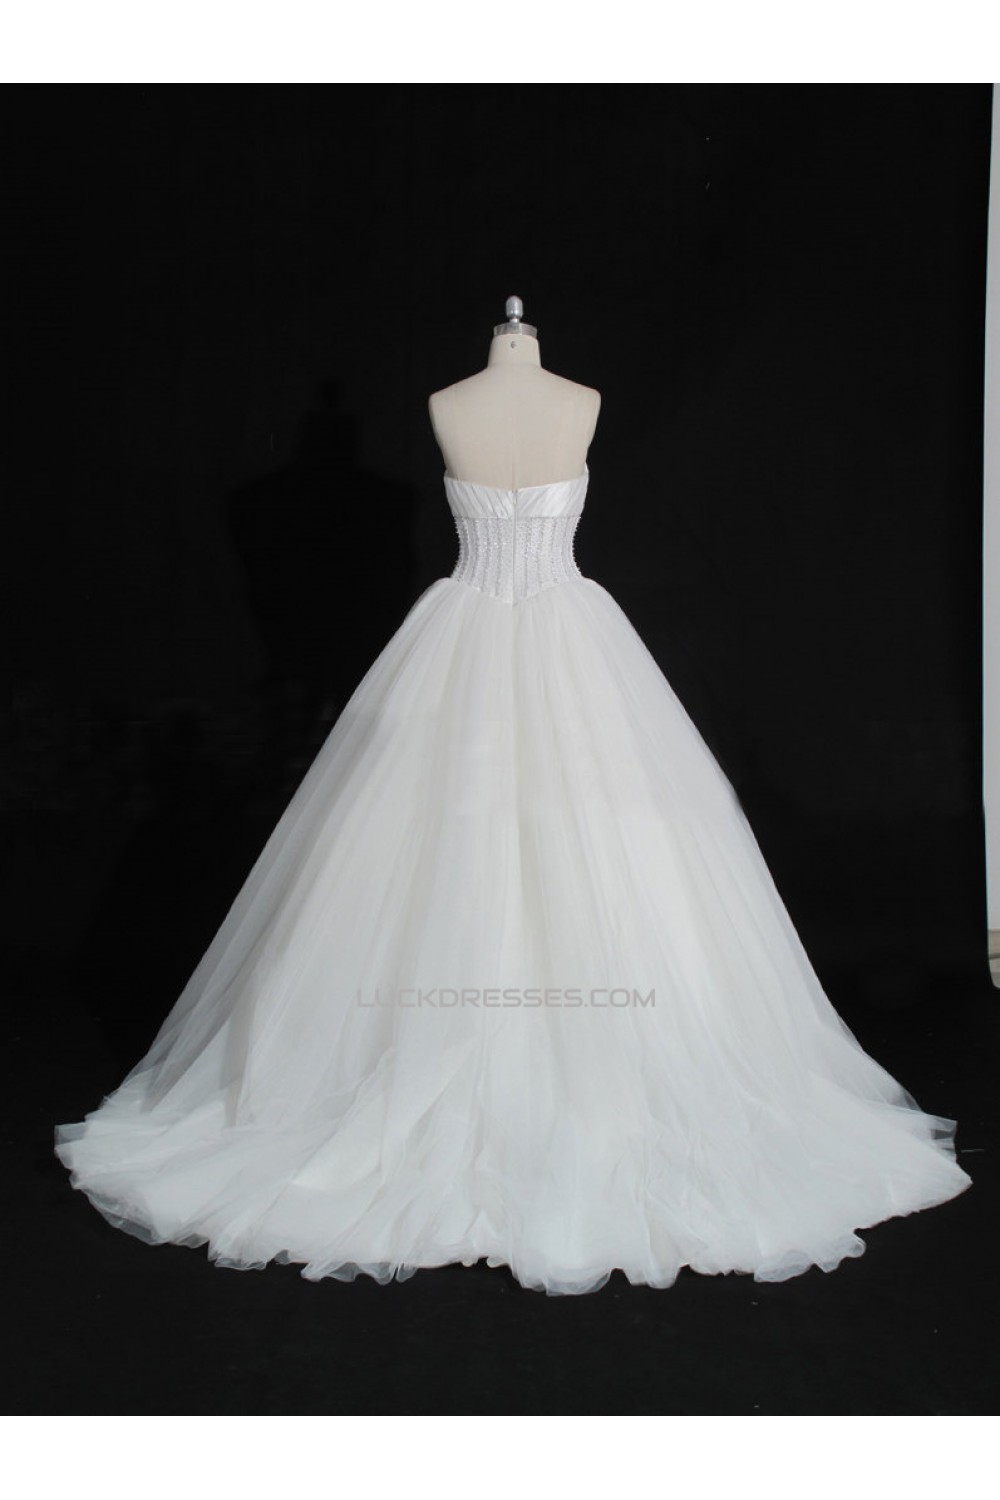 Ball Gown Sweetheart Bowknot Beaded Bridal Gown Wedding Dress WD010481